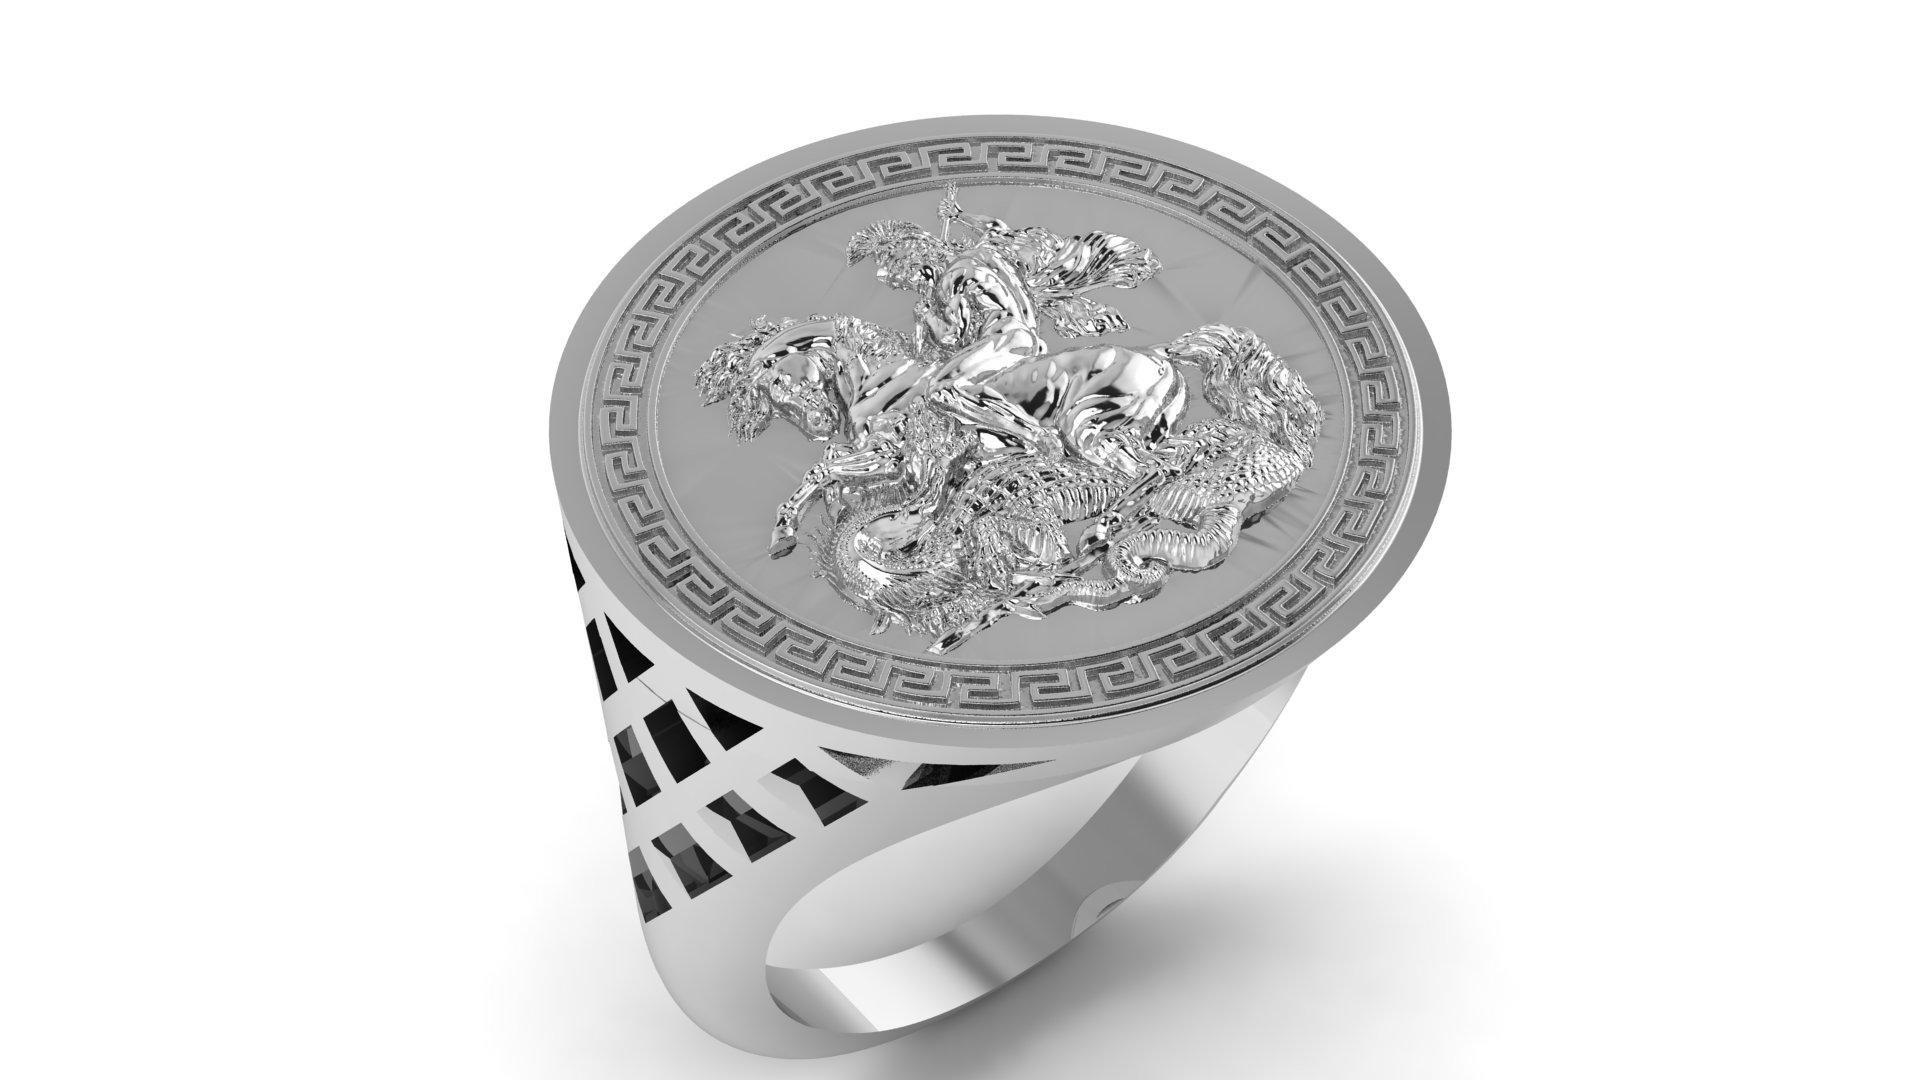 Sterling Silver Gents 5 Row Keeper Ring.